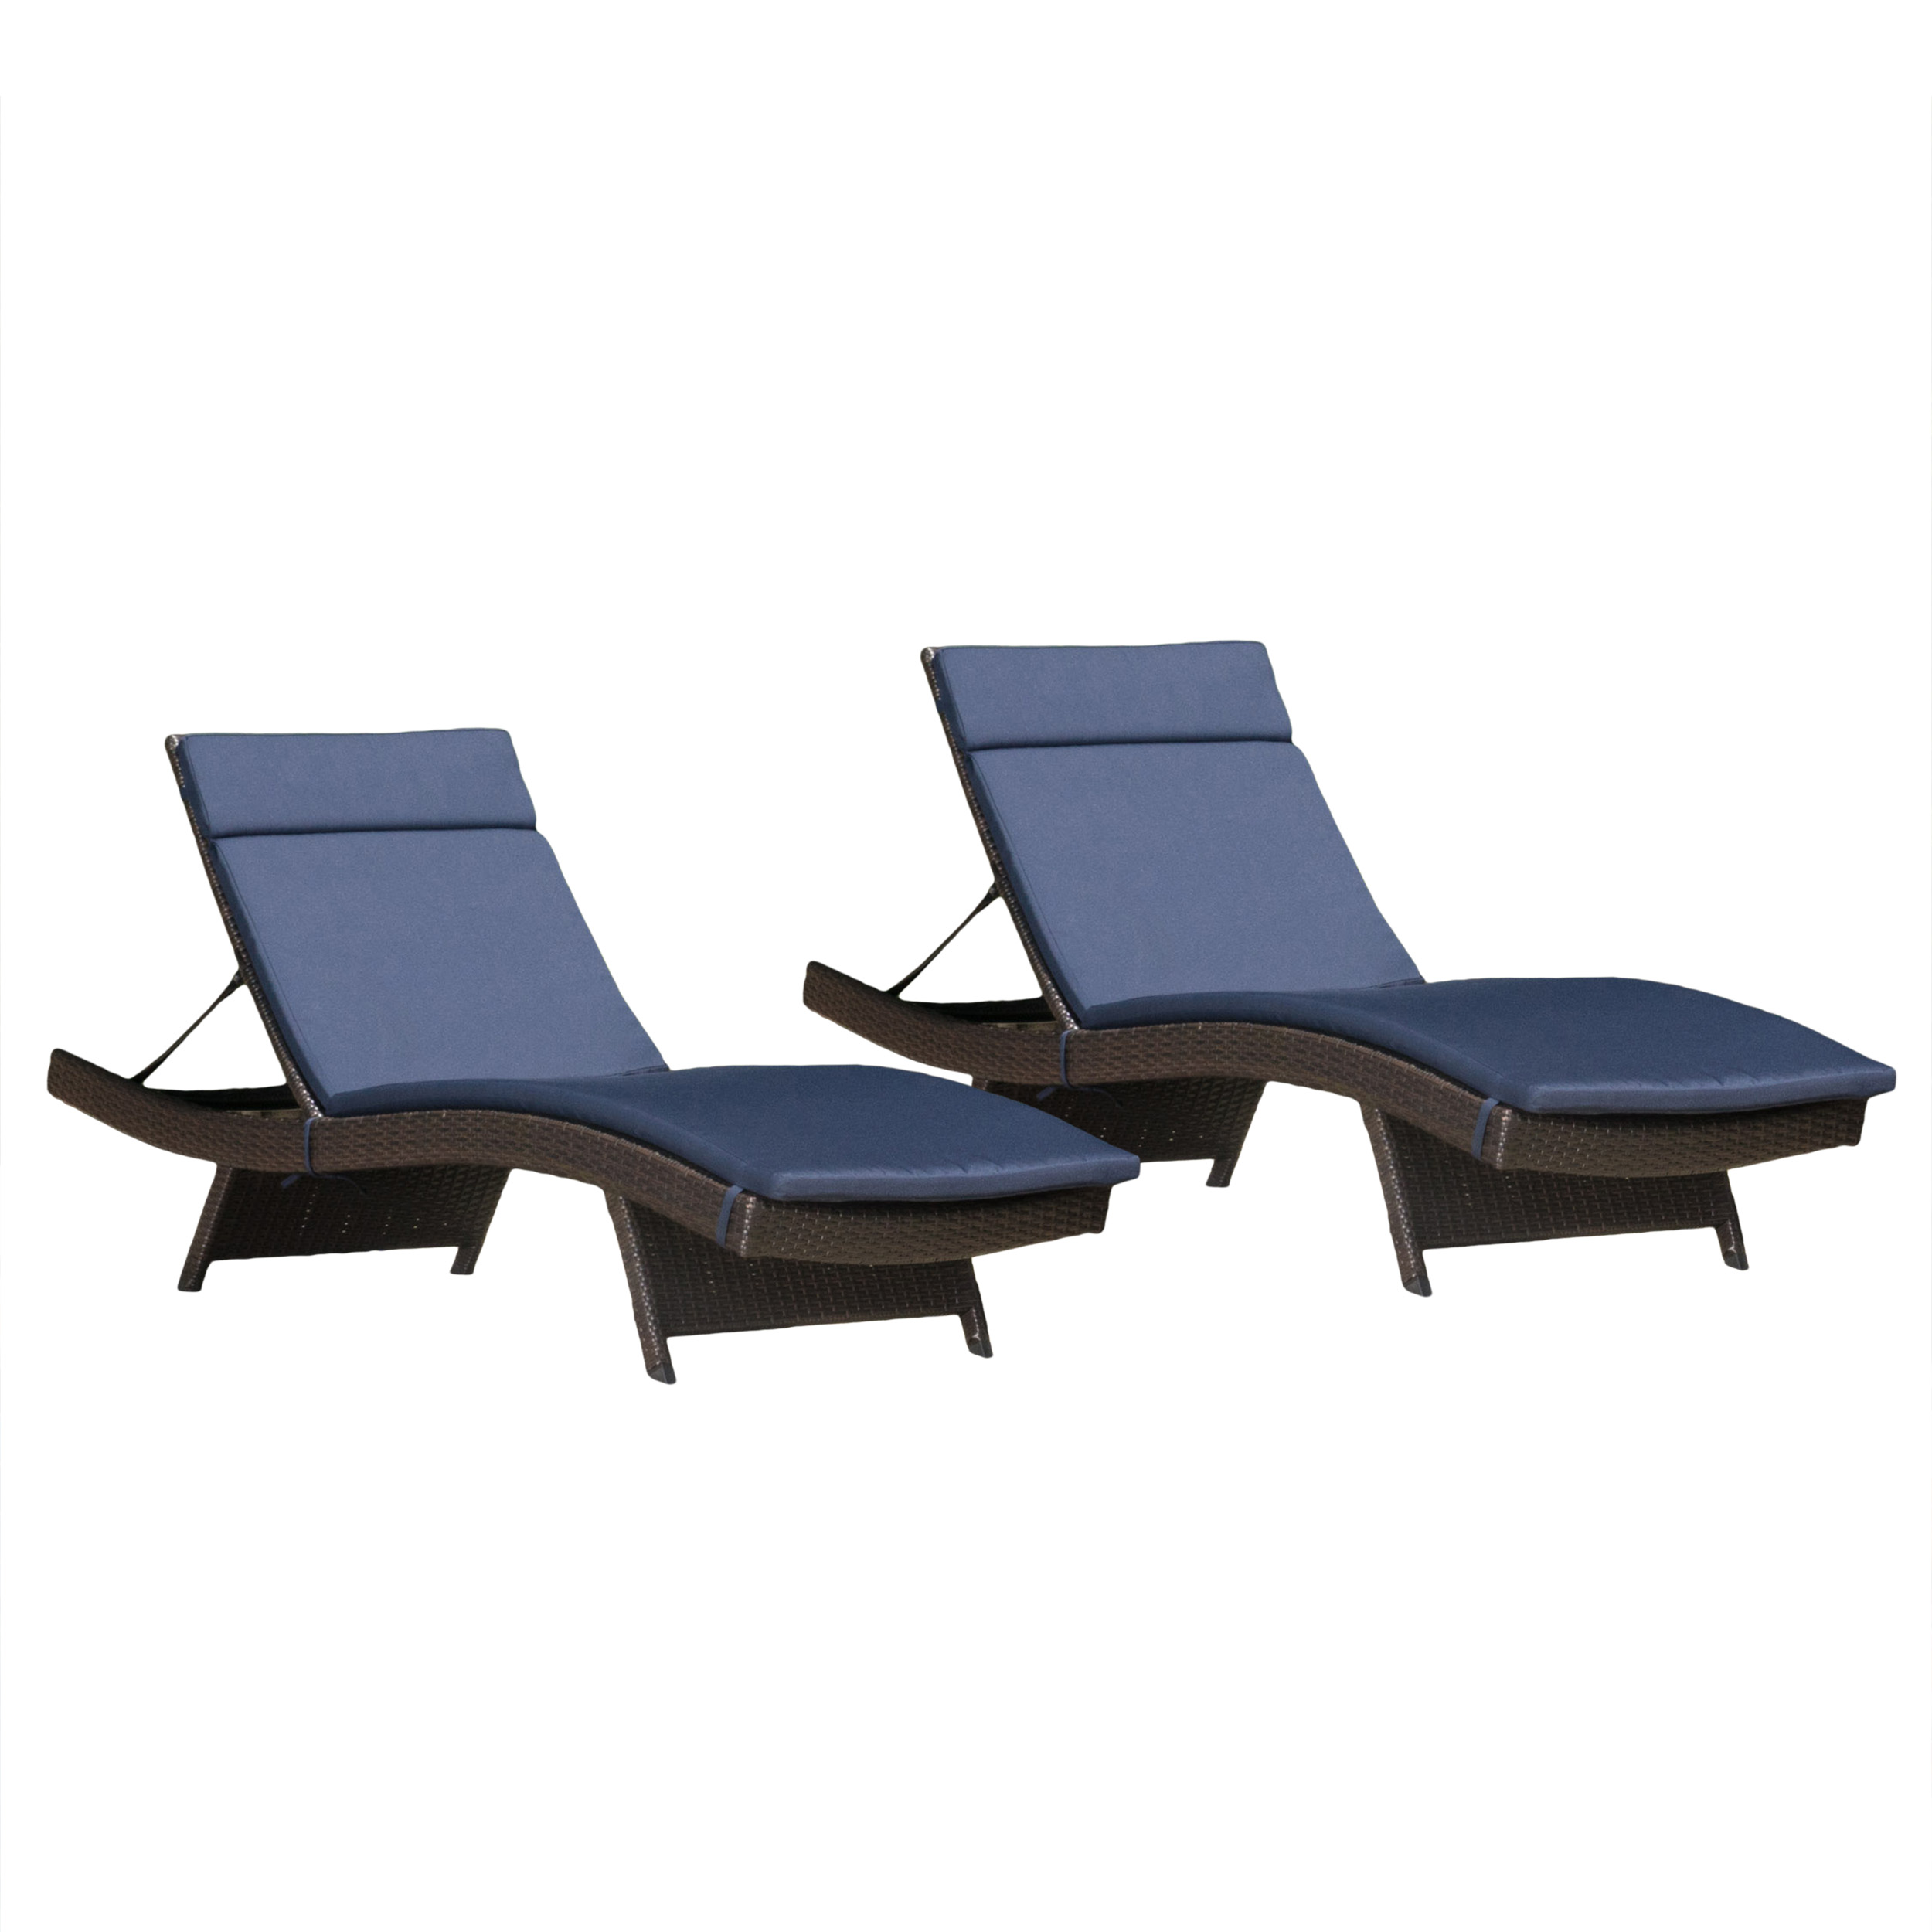 Noble House Sunset Outdoor Brown Wicker Adjustable Chaise Lounge with Colored Cushions (Set of 2)